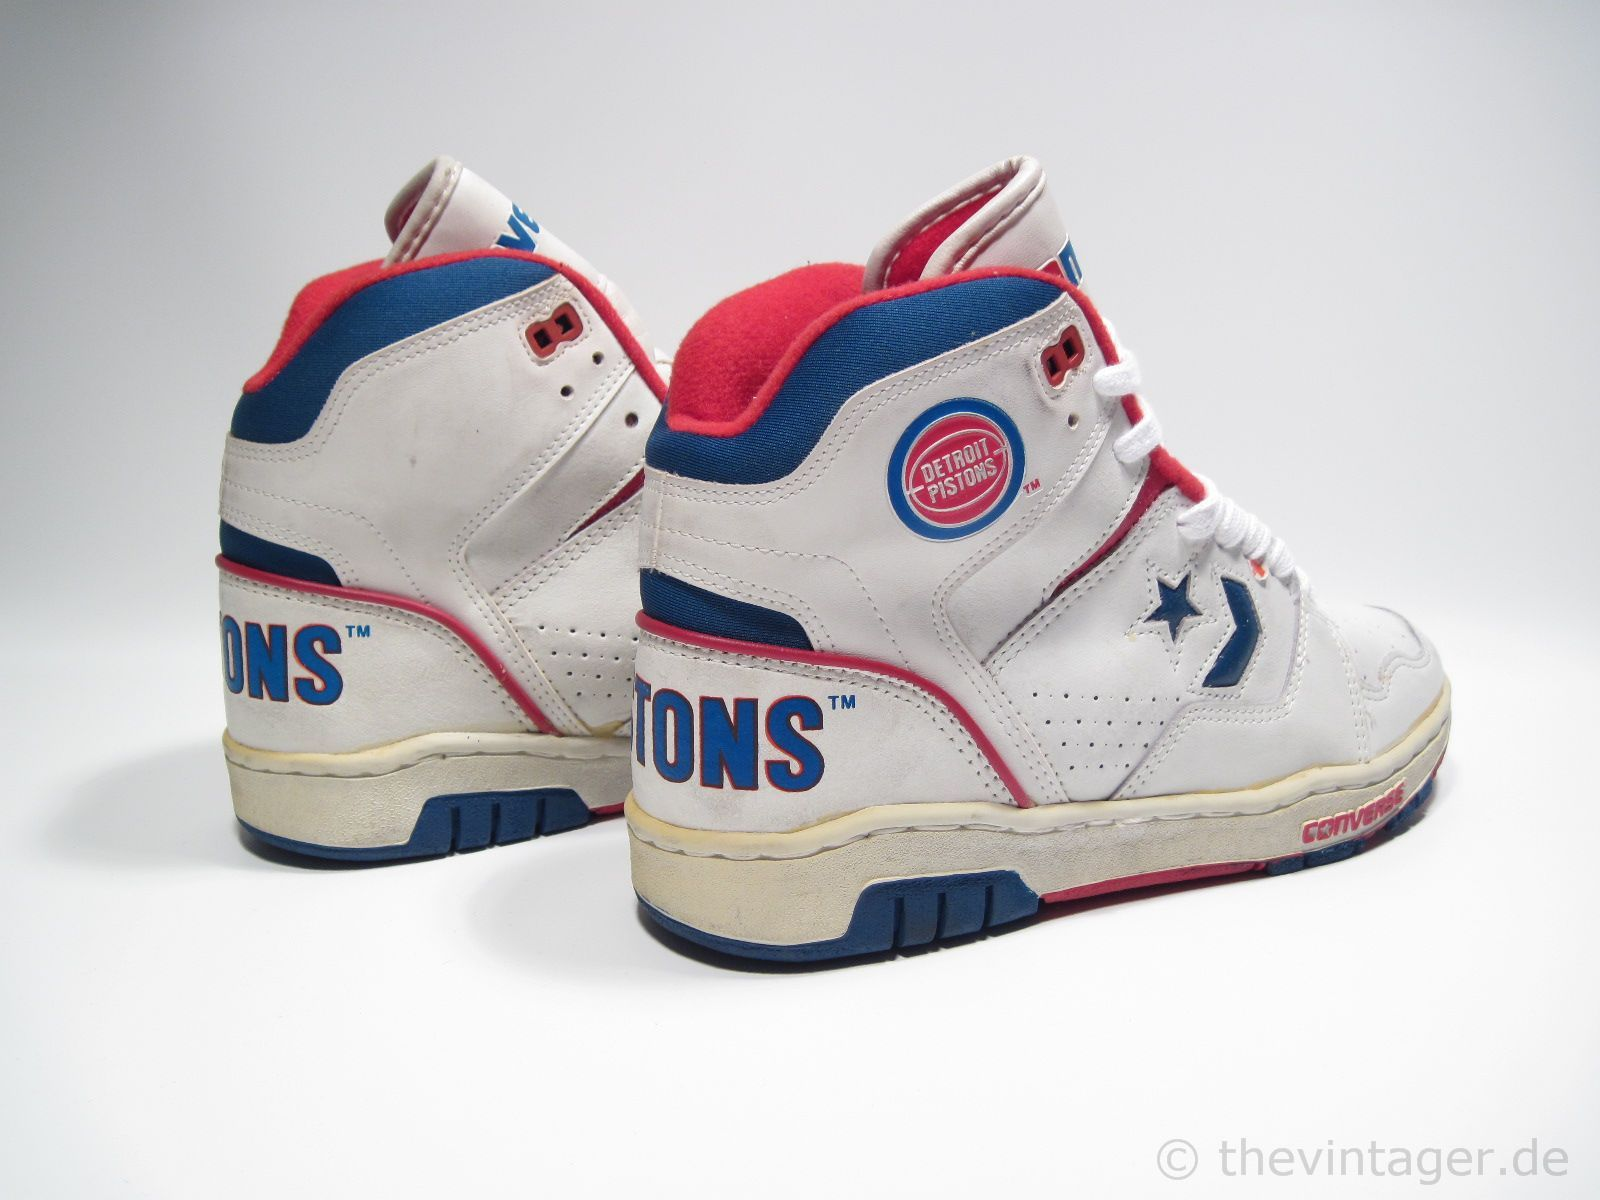 1980s Converse Basketball Shoes | CONS DETROIT PISTONS - thevintager ...